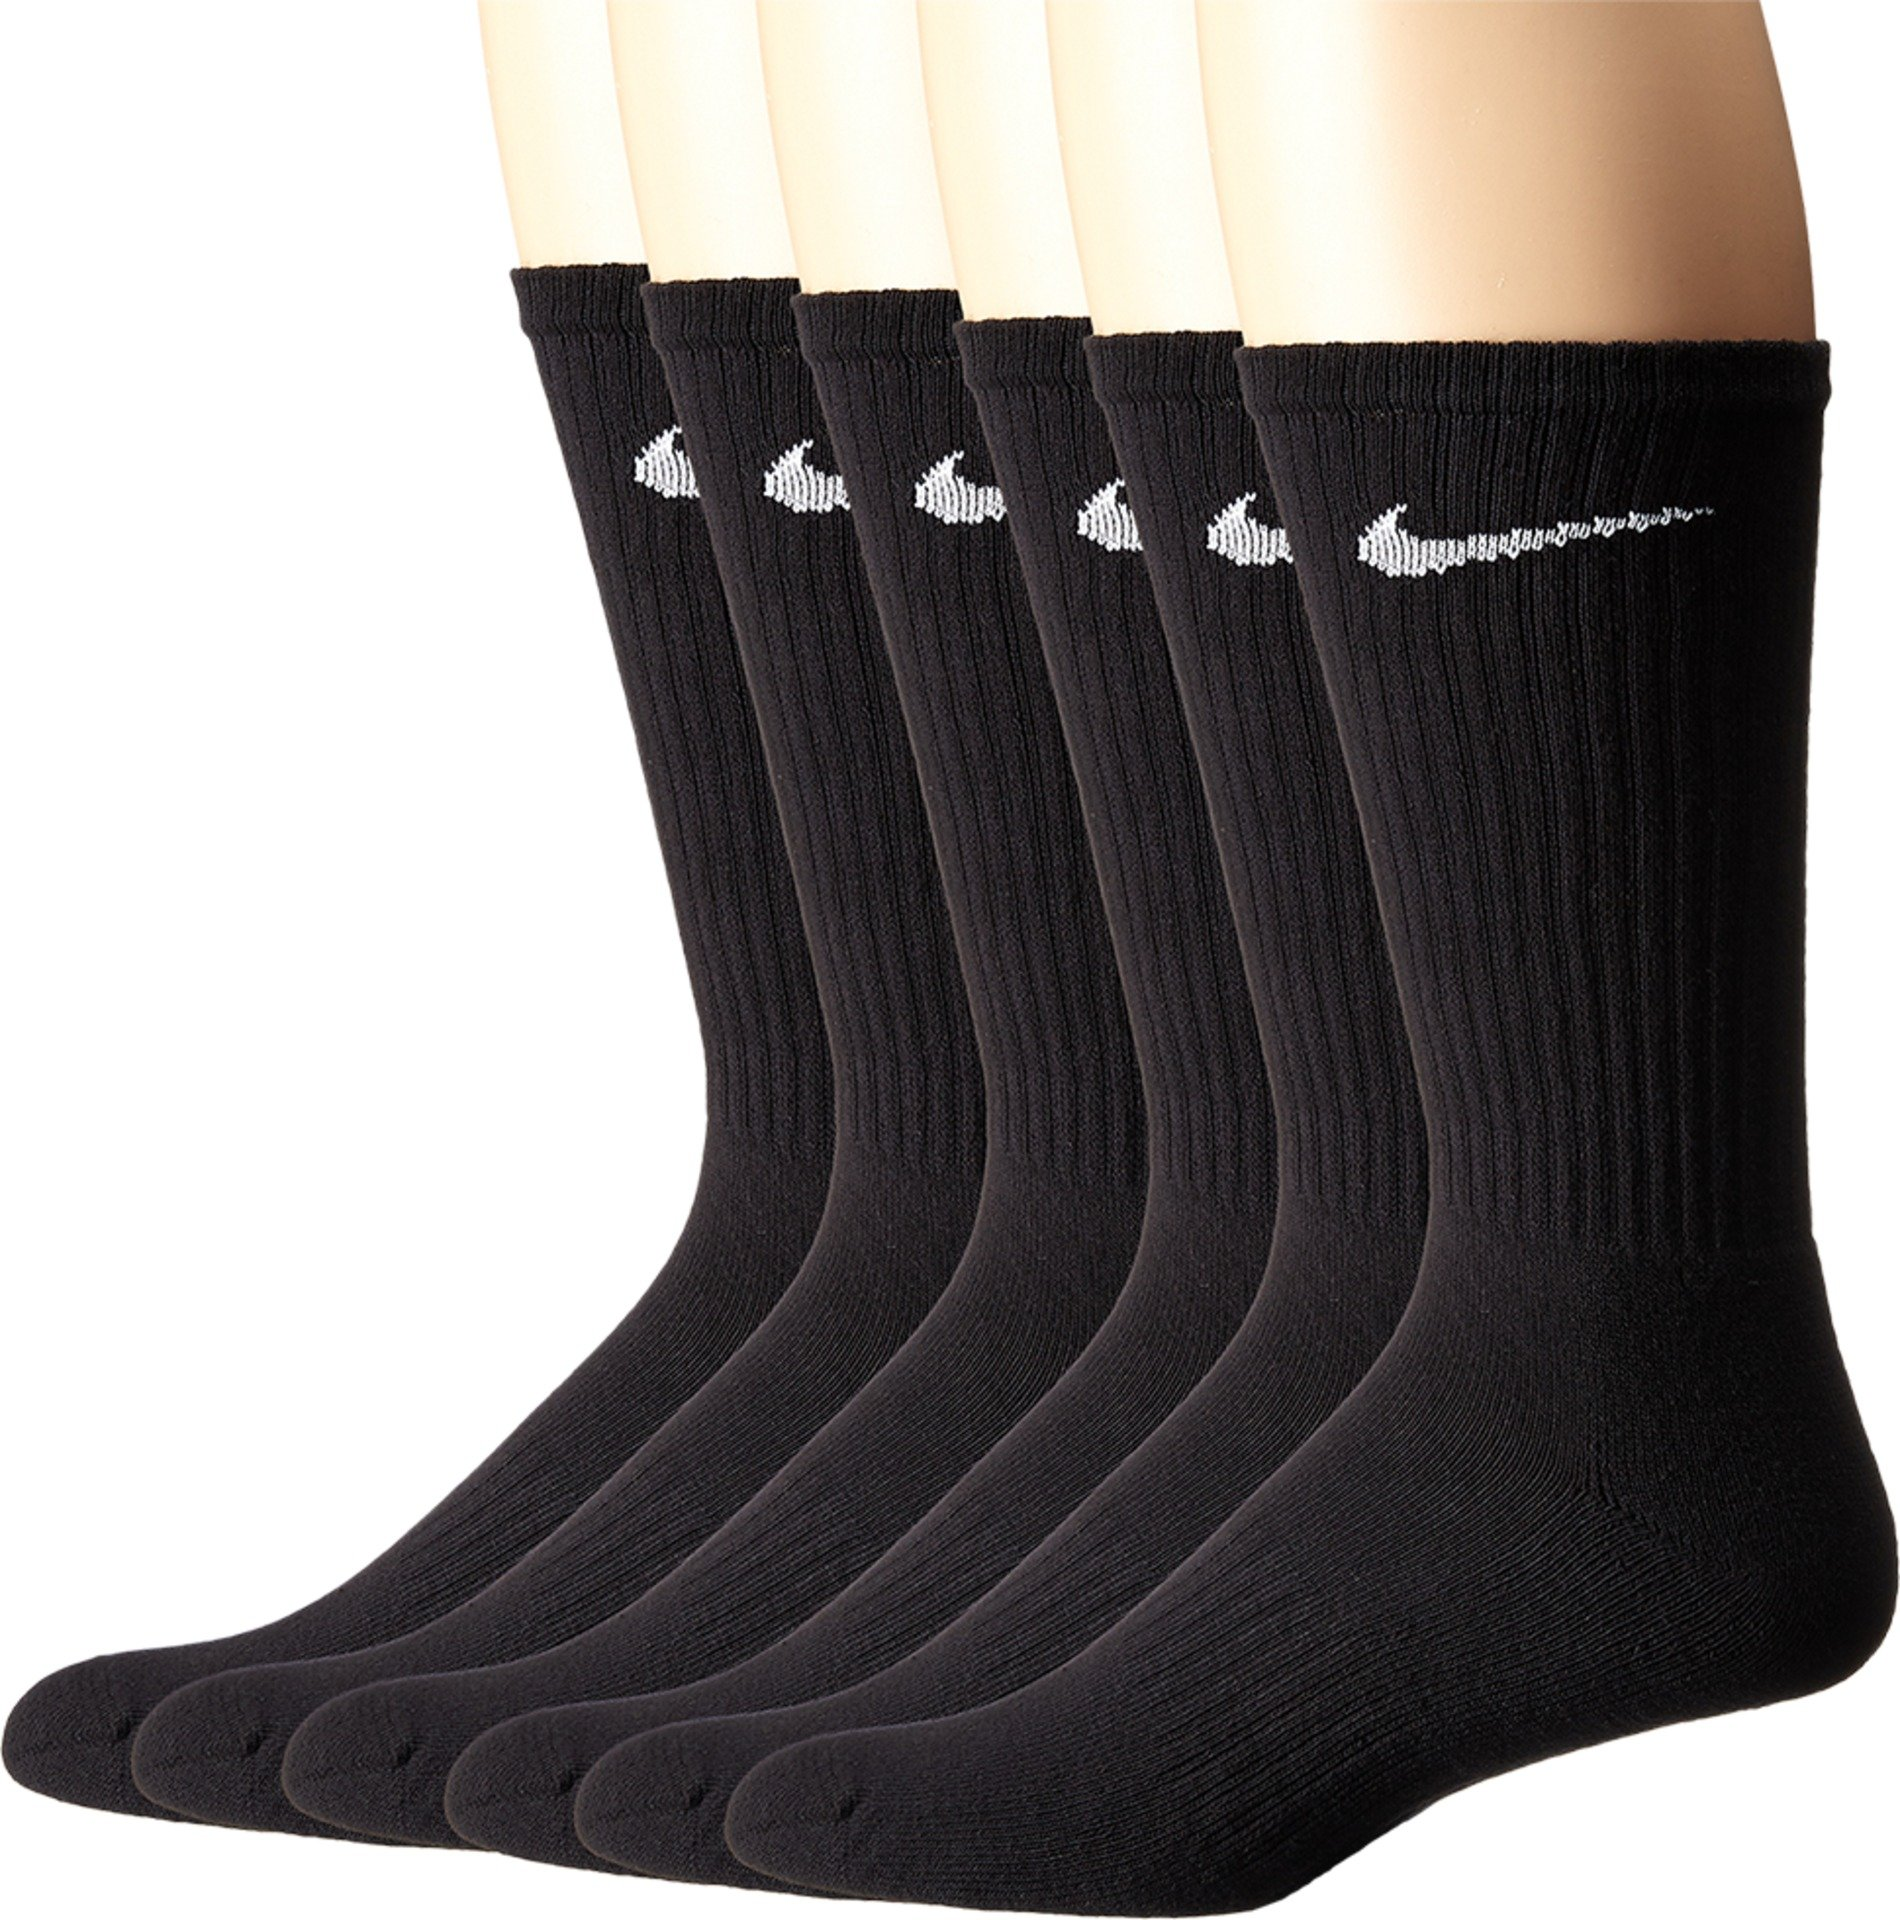 NIKE Unisex Performance Cushion Crew Socks with Band (6 Pairs), Black/White, Large